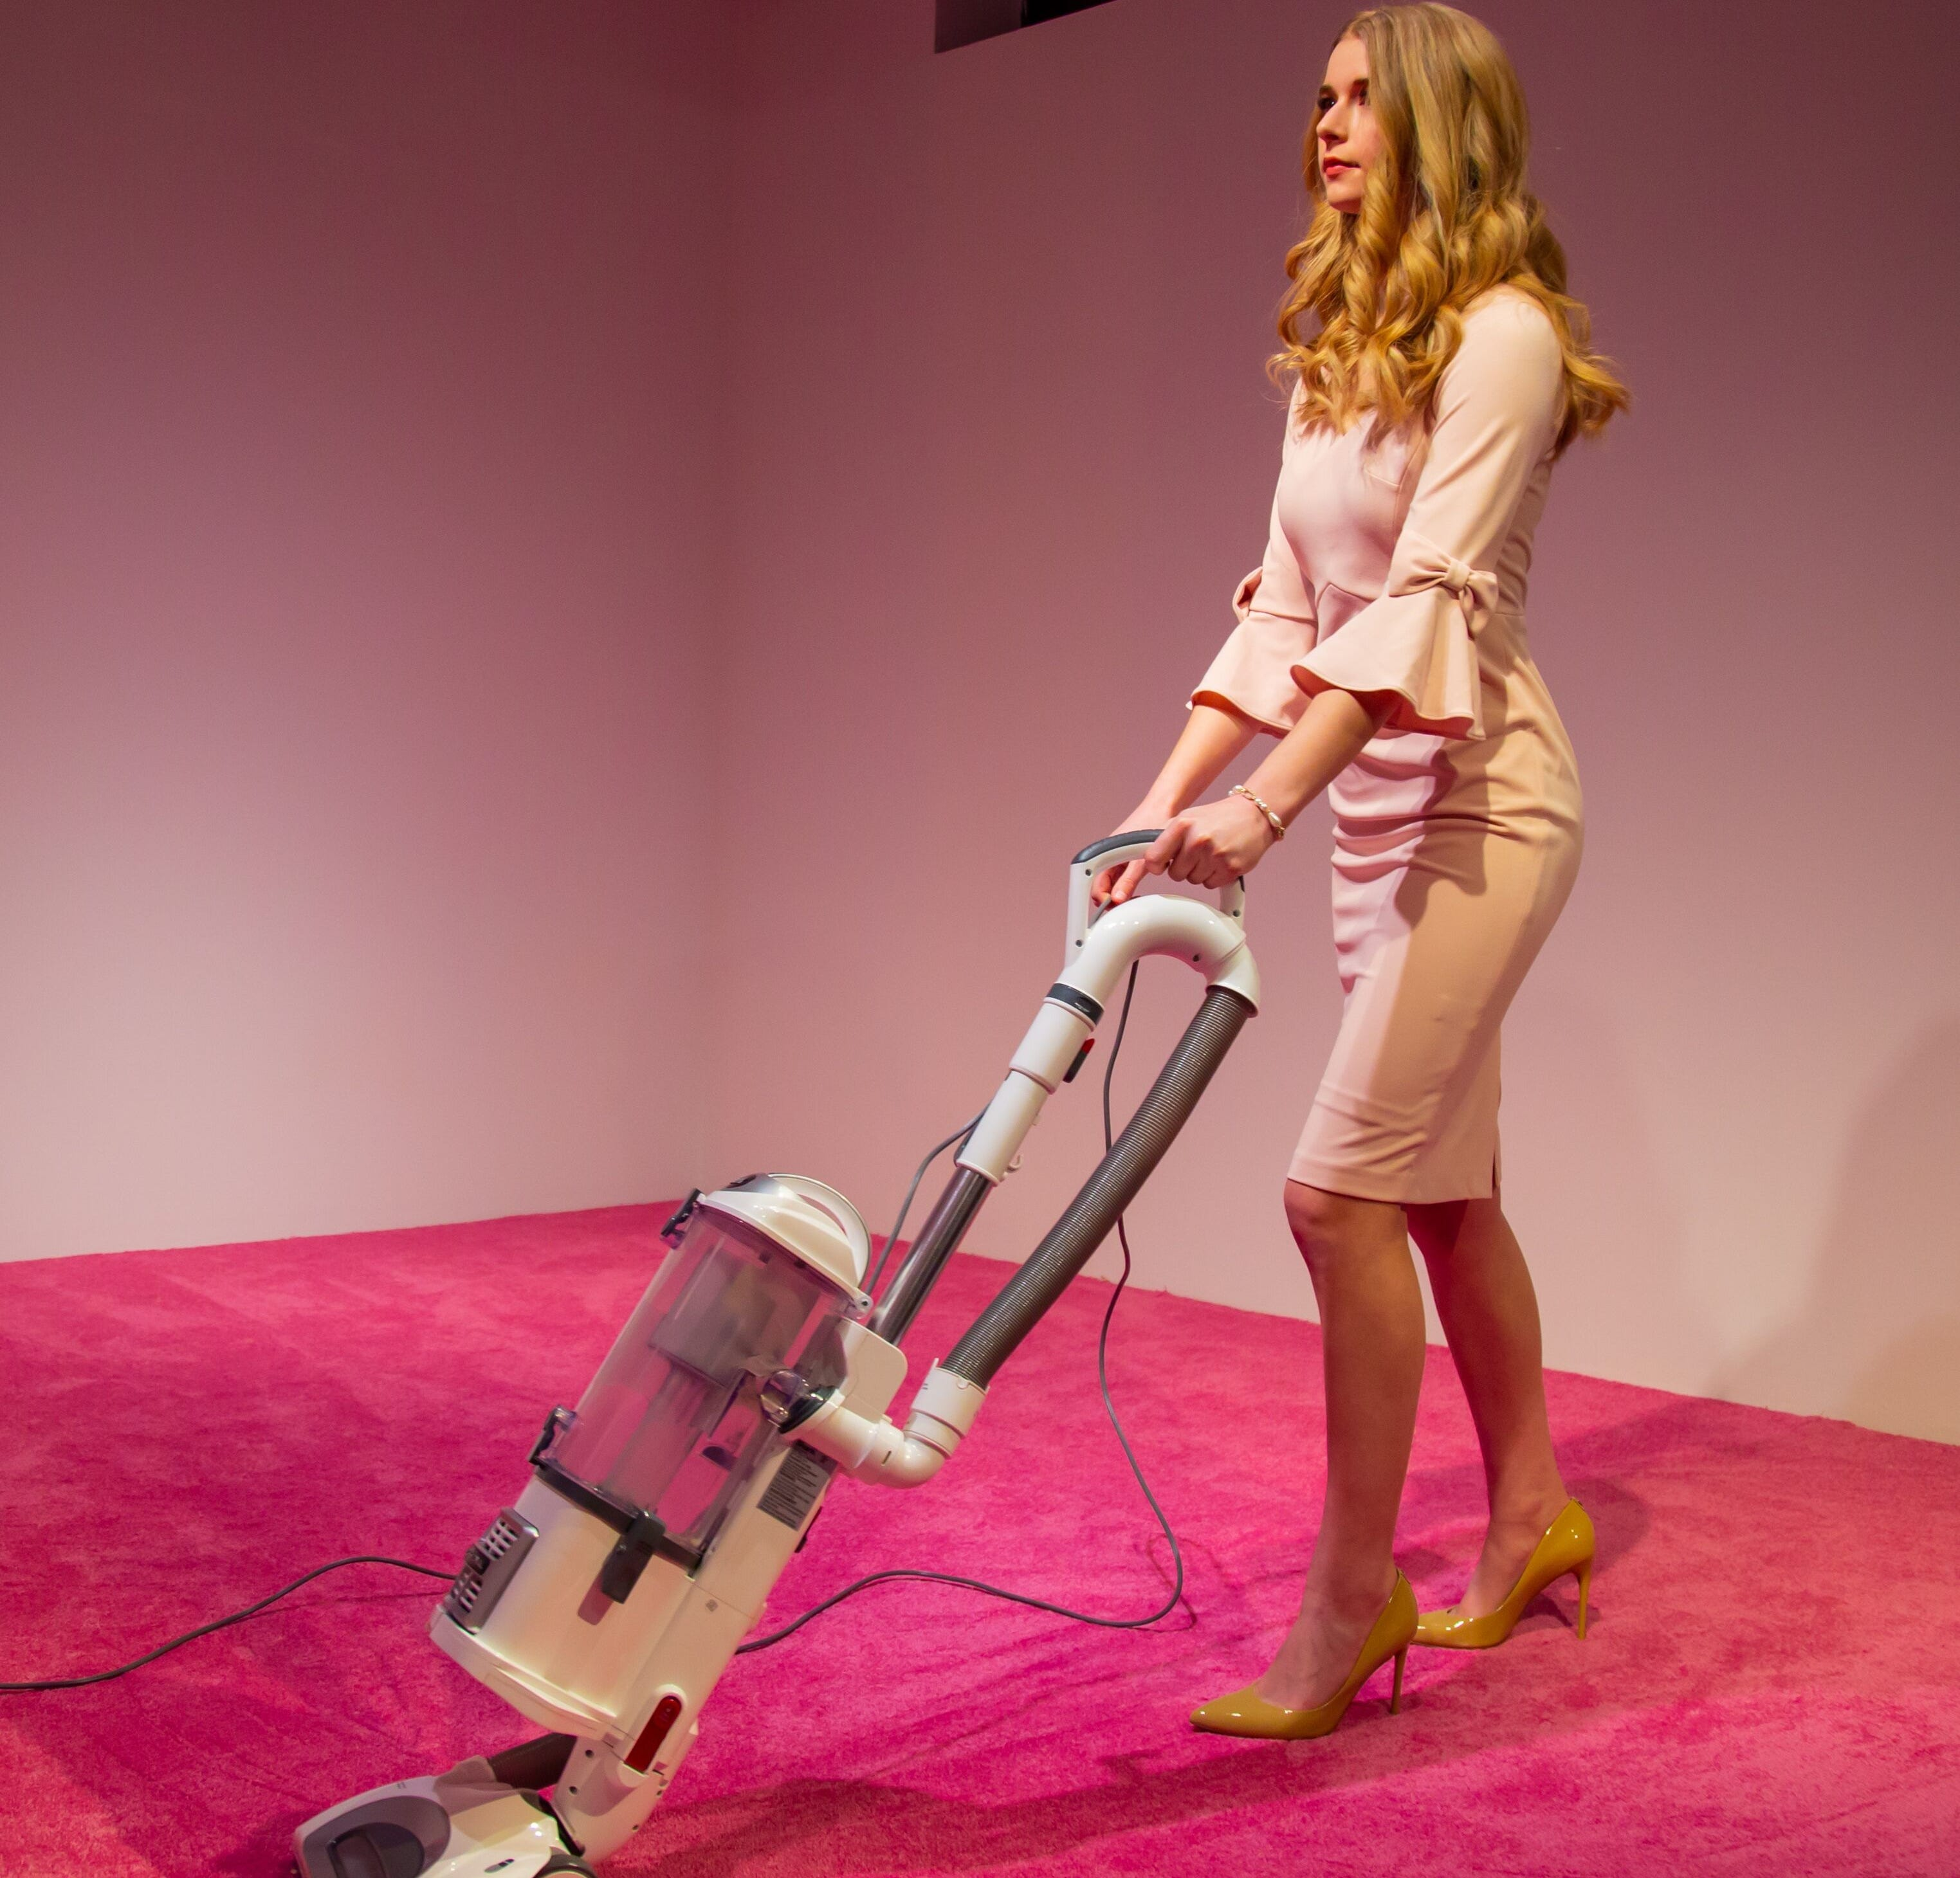 """The art exhibit """"Ivanka Vacuuming"""" by Jennifer Rubell is shown here. The CulturalDC project drew criticism from Ivanka Trump's little brother, Eric Trump."""